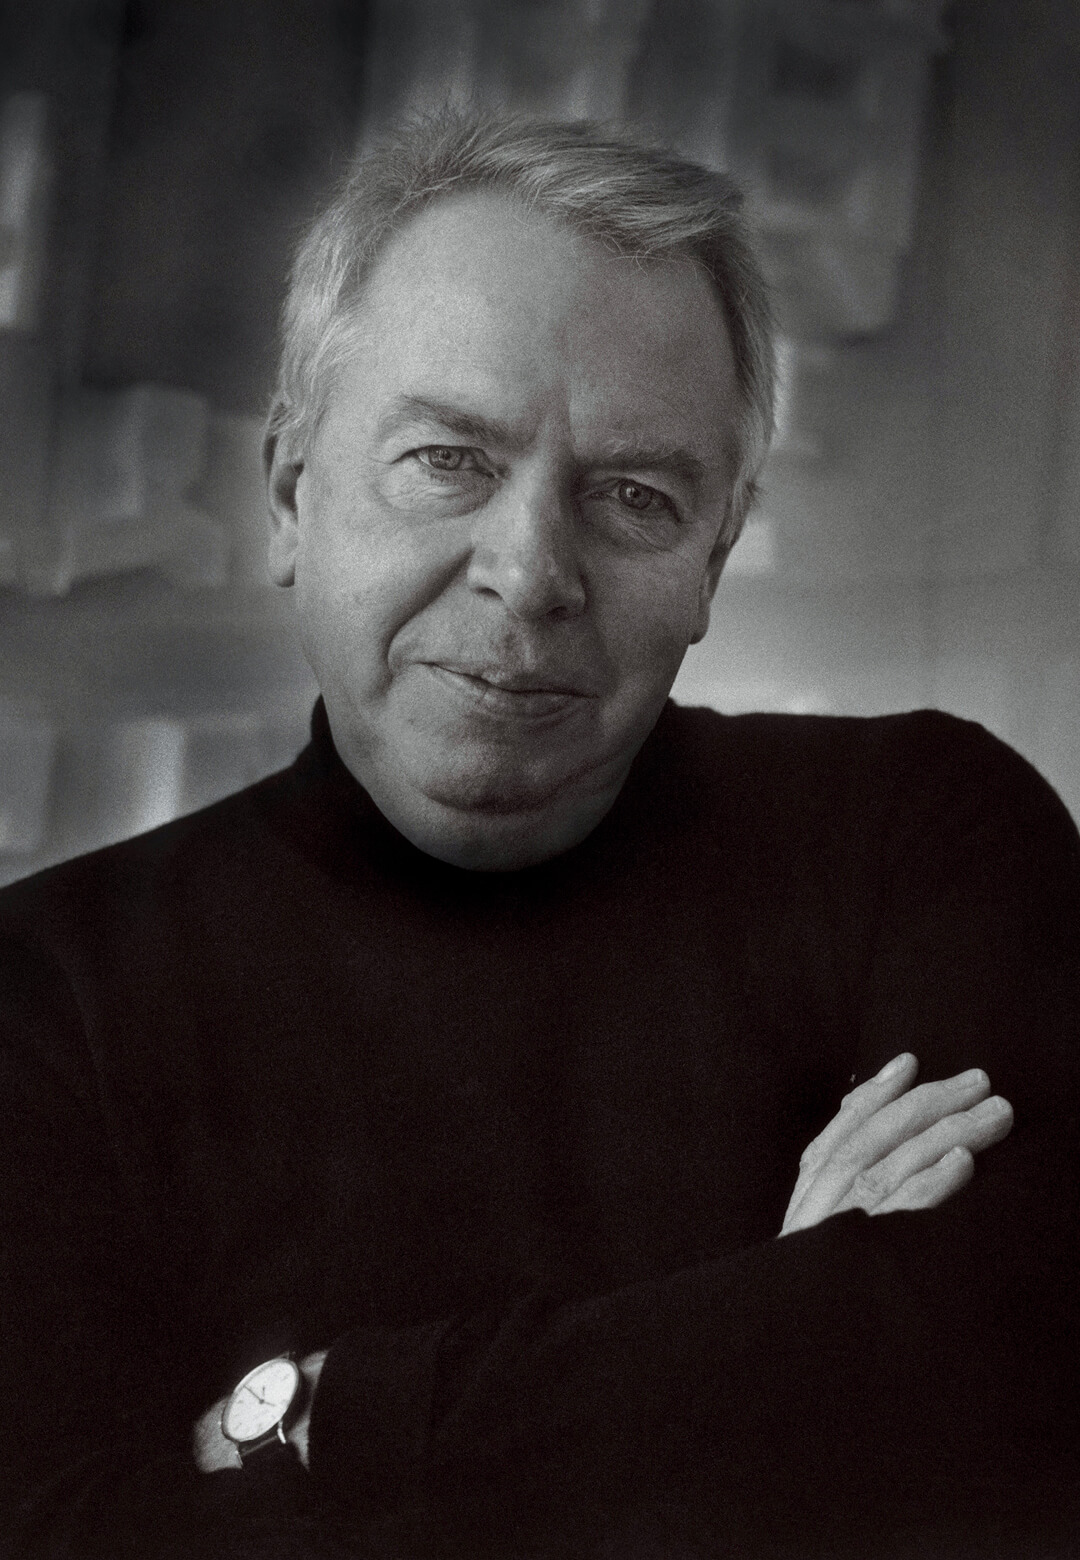 David Chipperfield; Re-establishment of form and figure